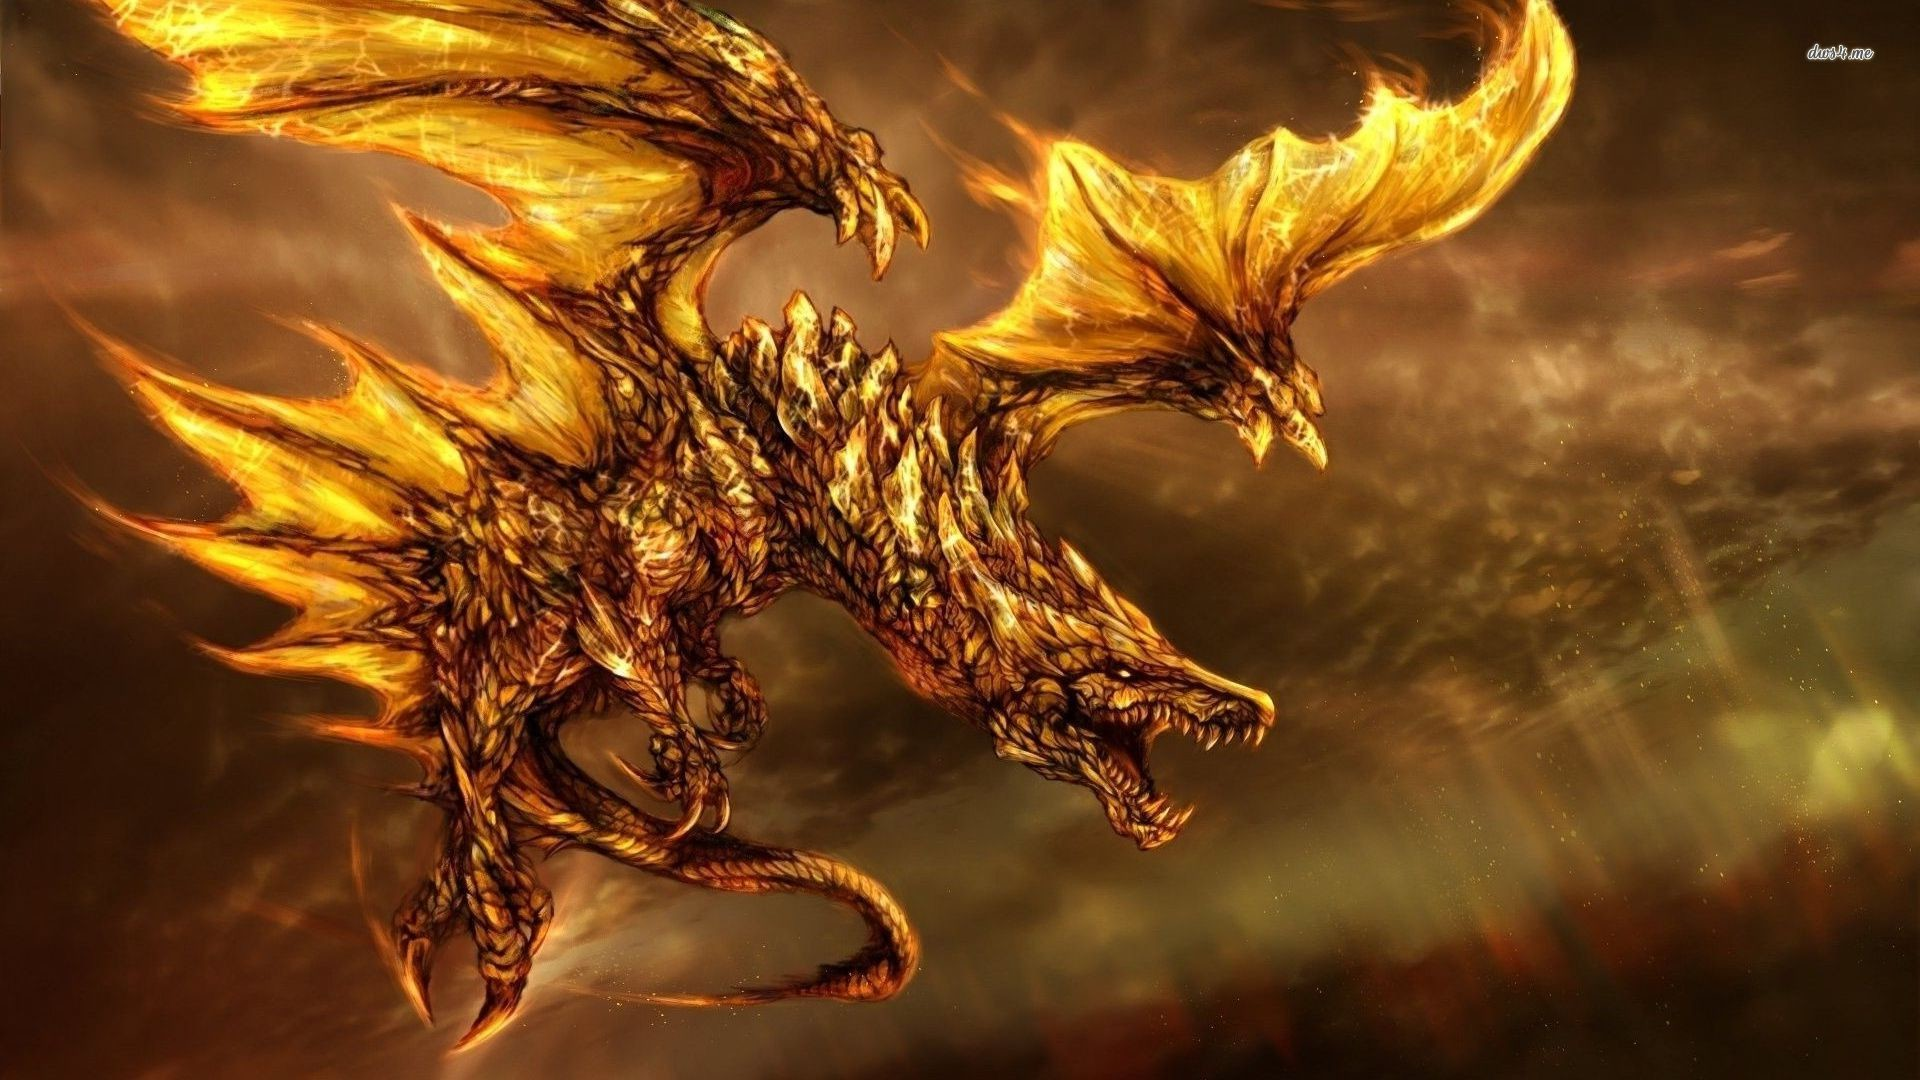 1920x1080 Fire breathing dragon wallpaper - Fantasy wallpapers - #23659